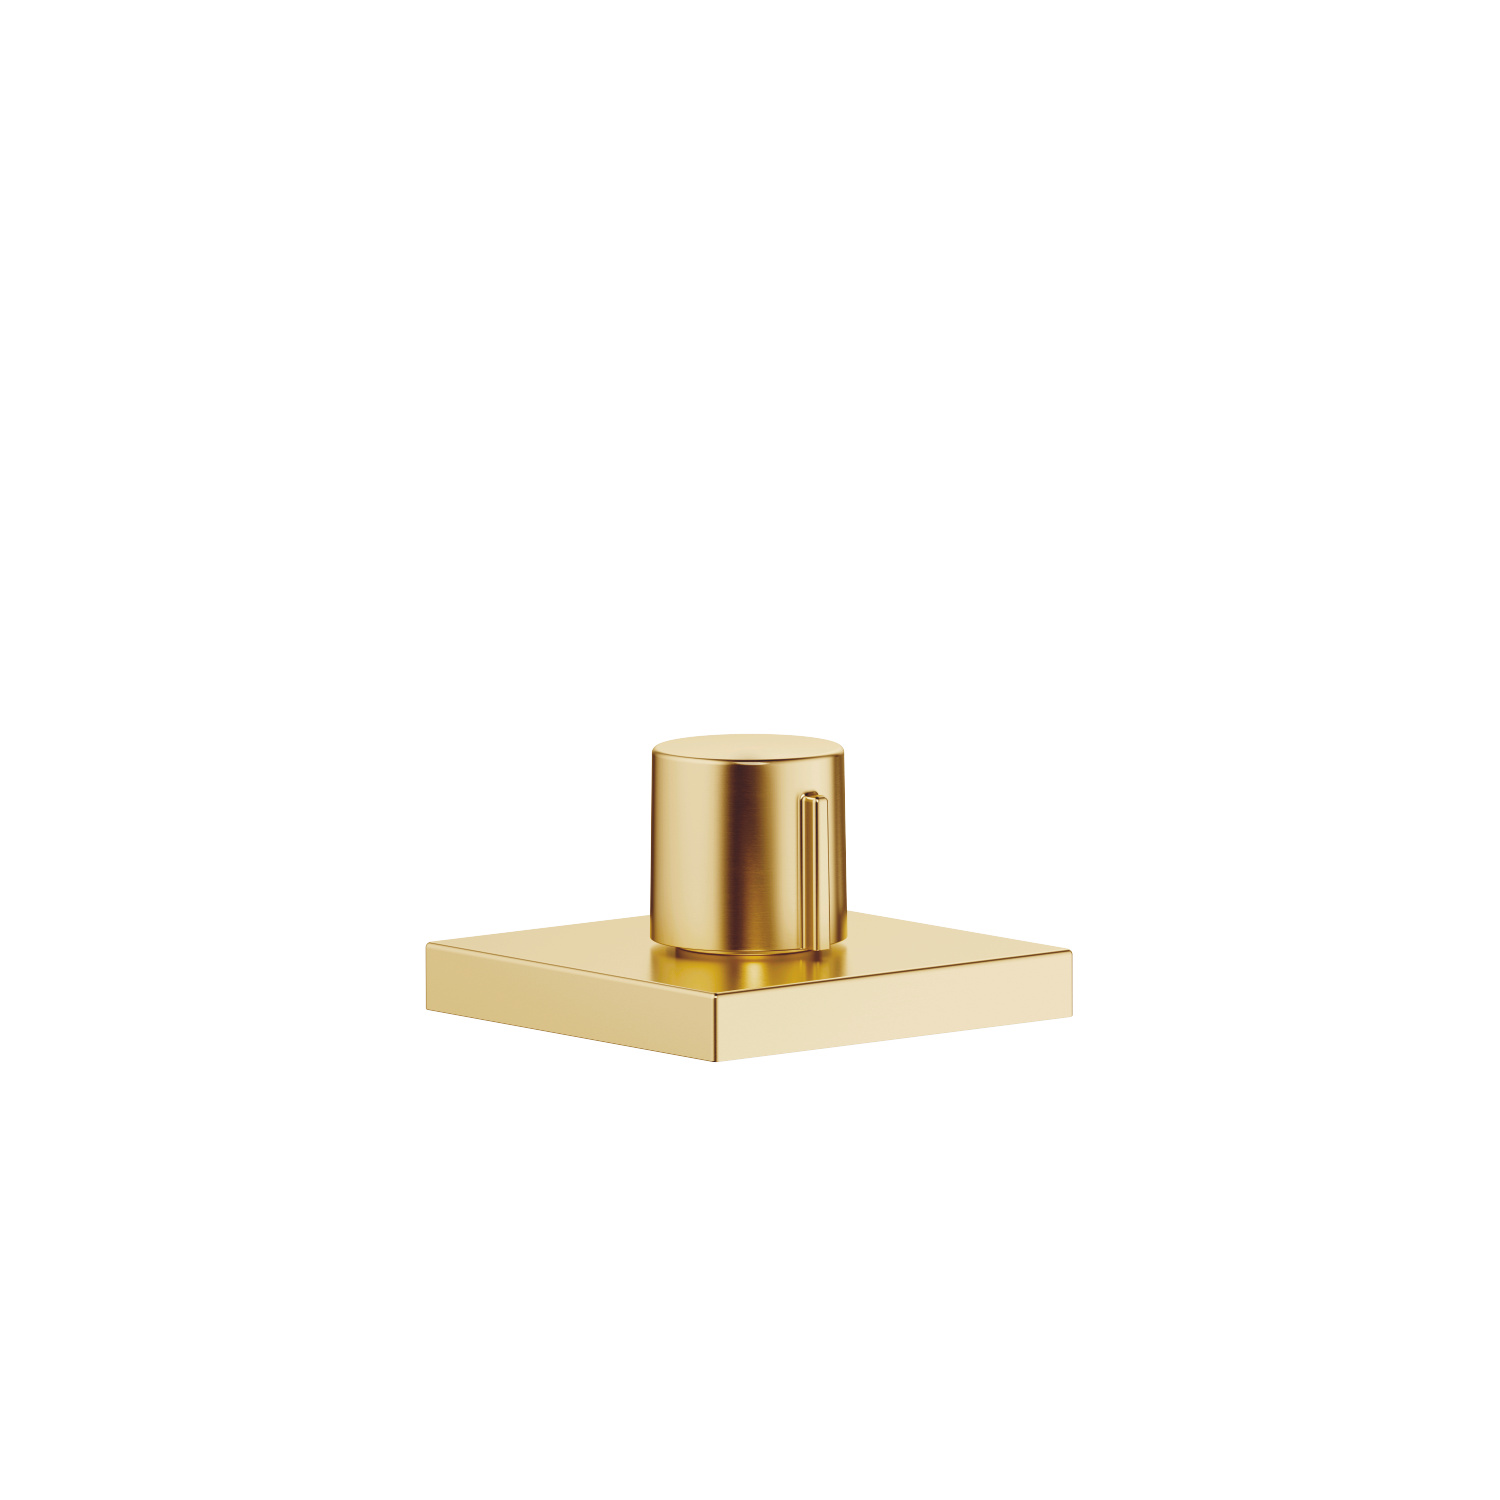 Deck valve anti-clockwise closing cold or hot - brushed Durabrass